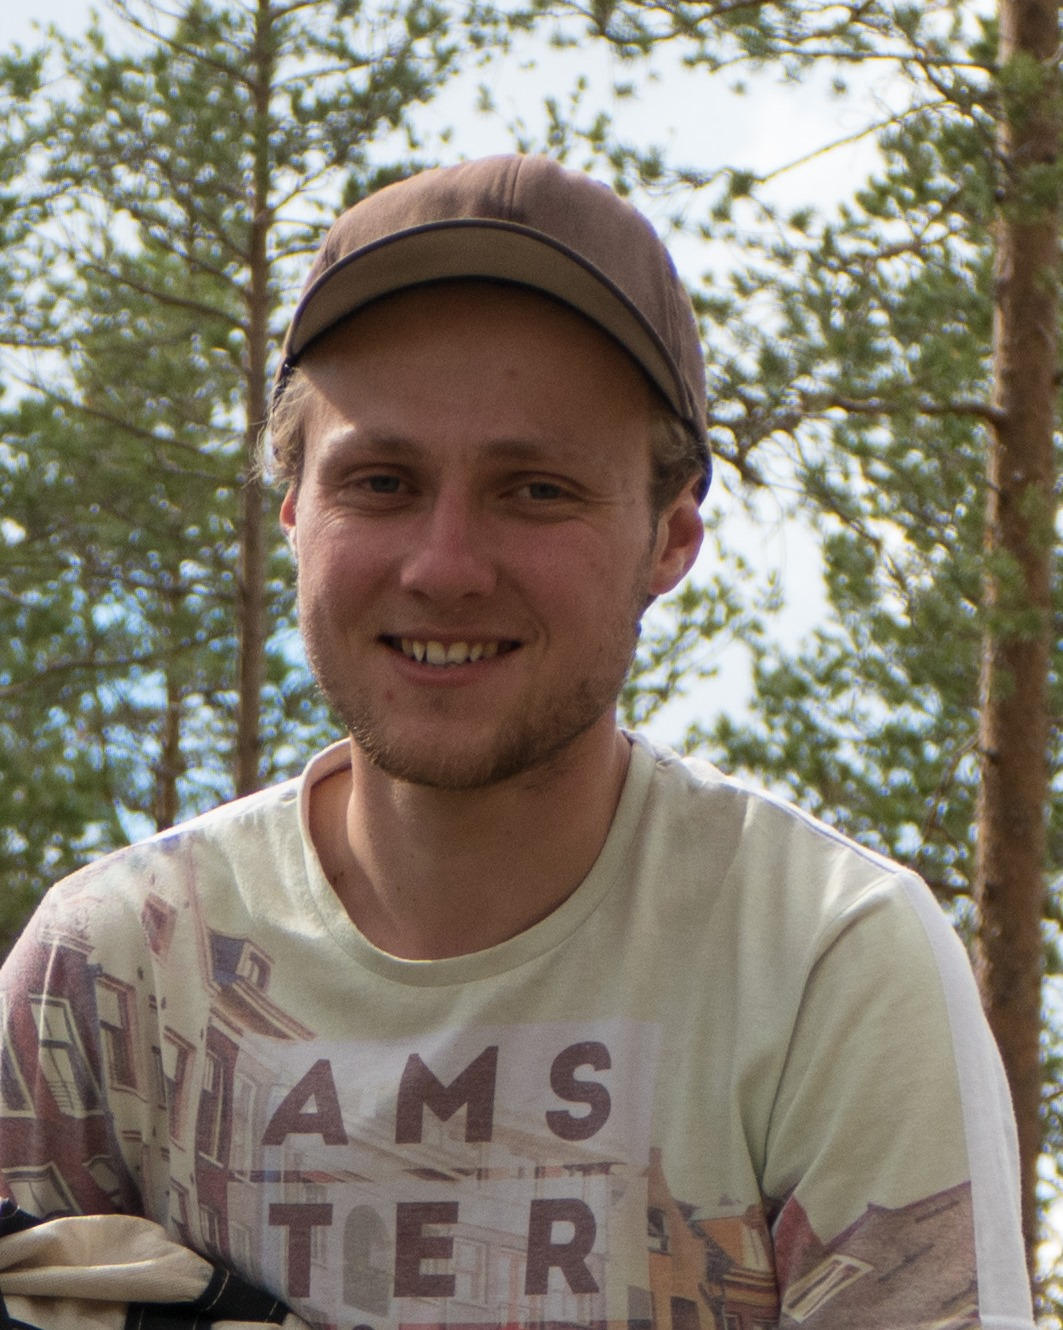 David Ahlqvist : Field research tecnician